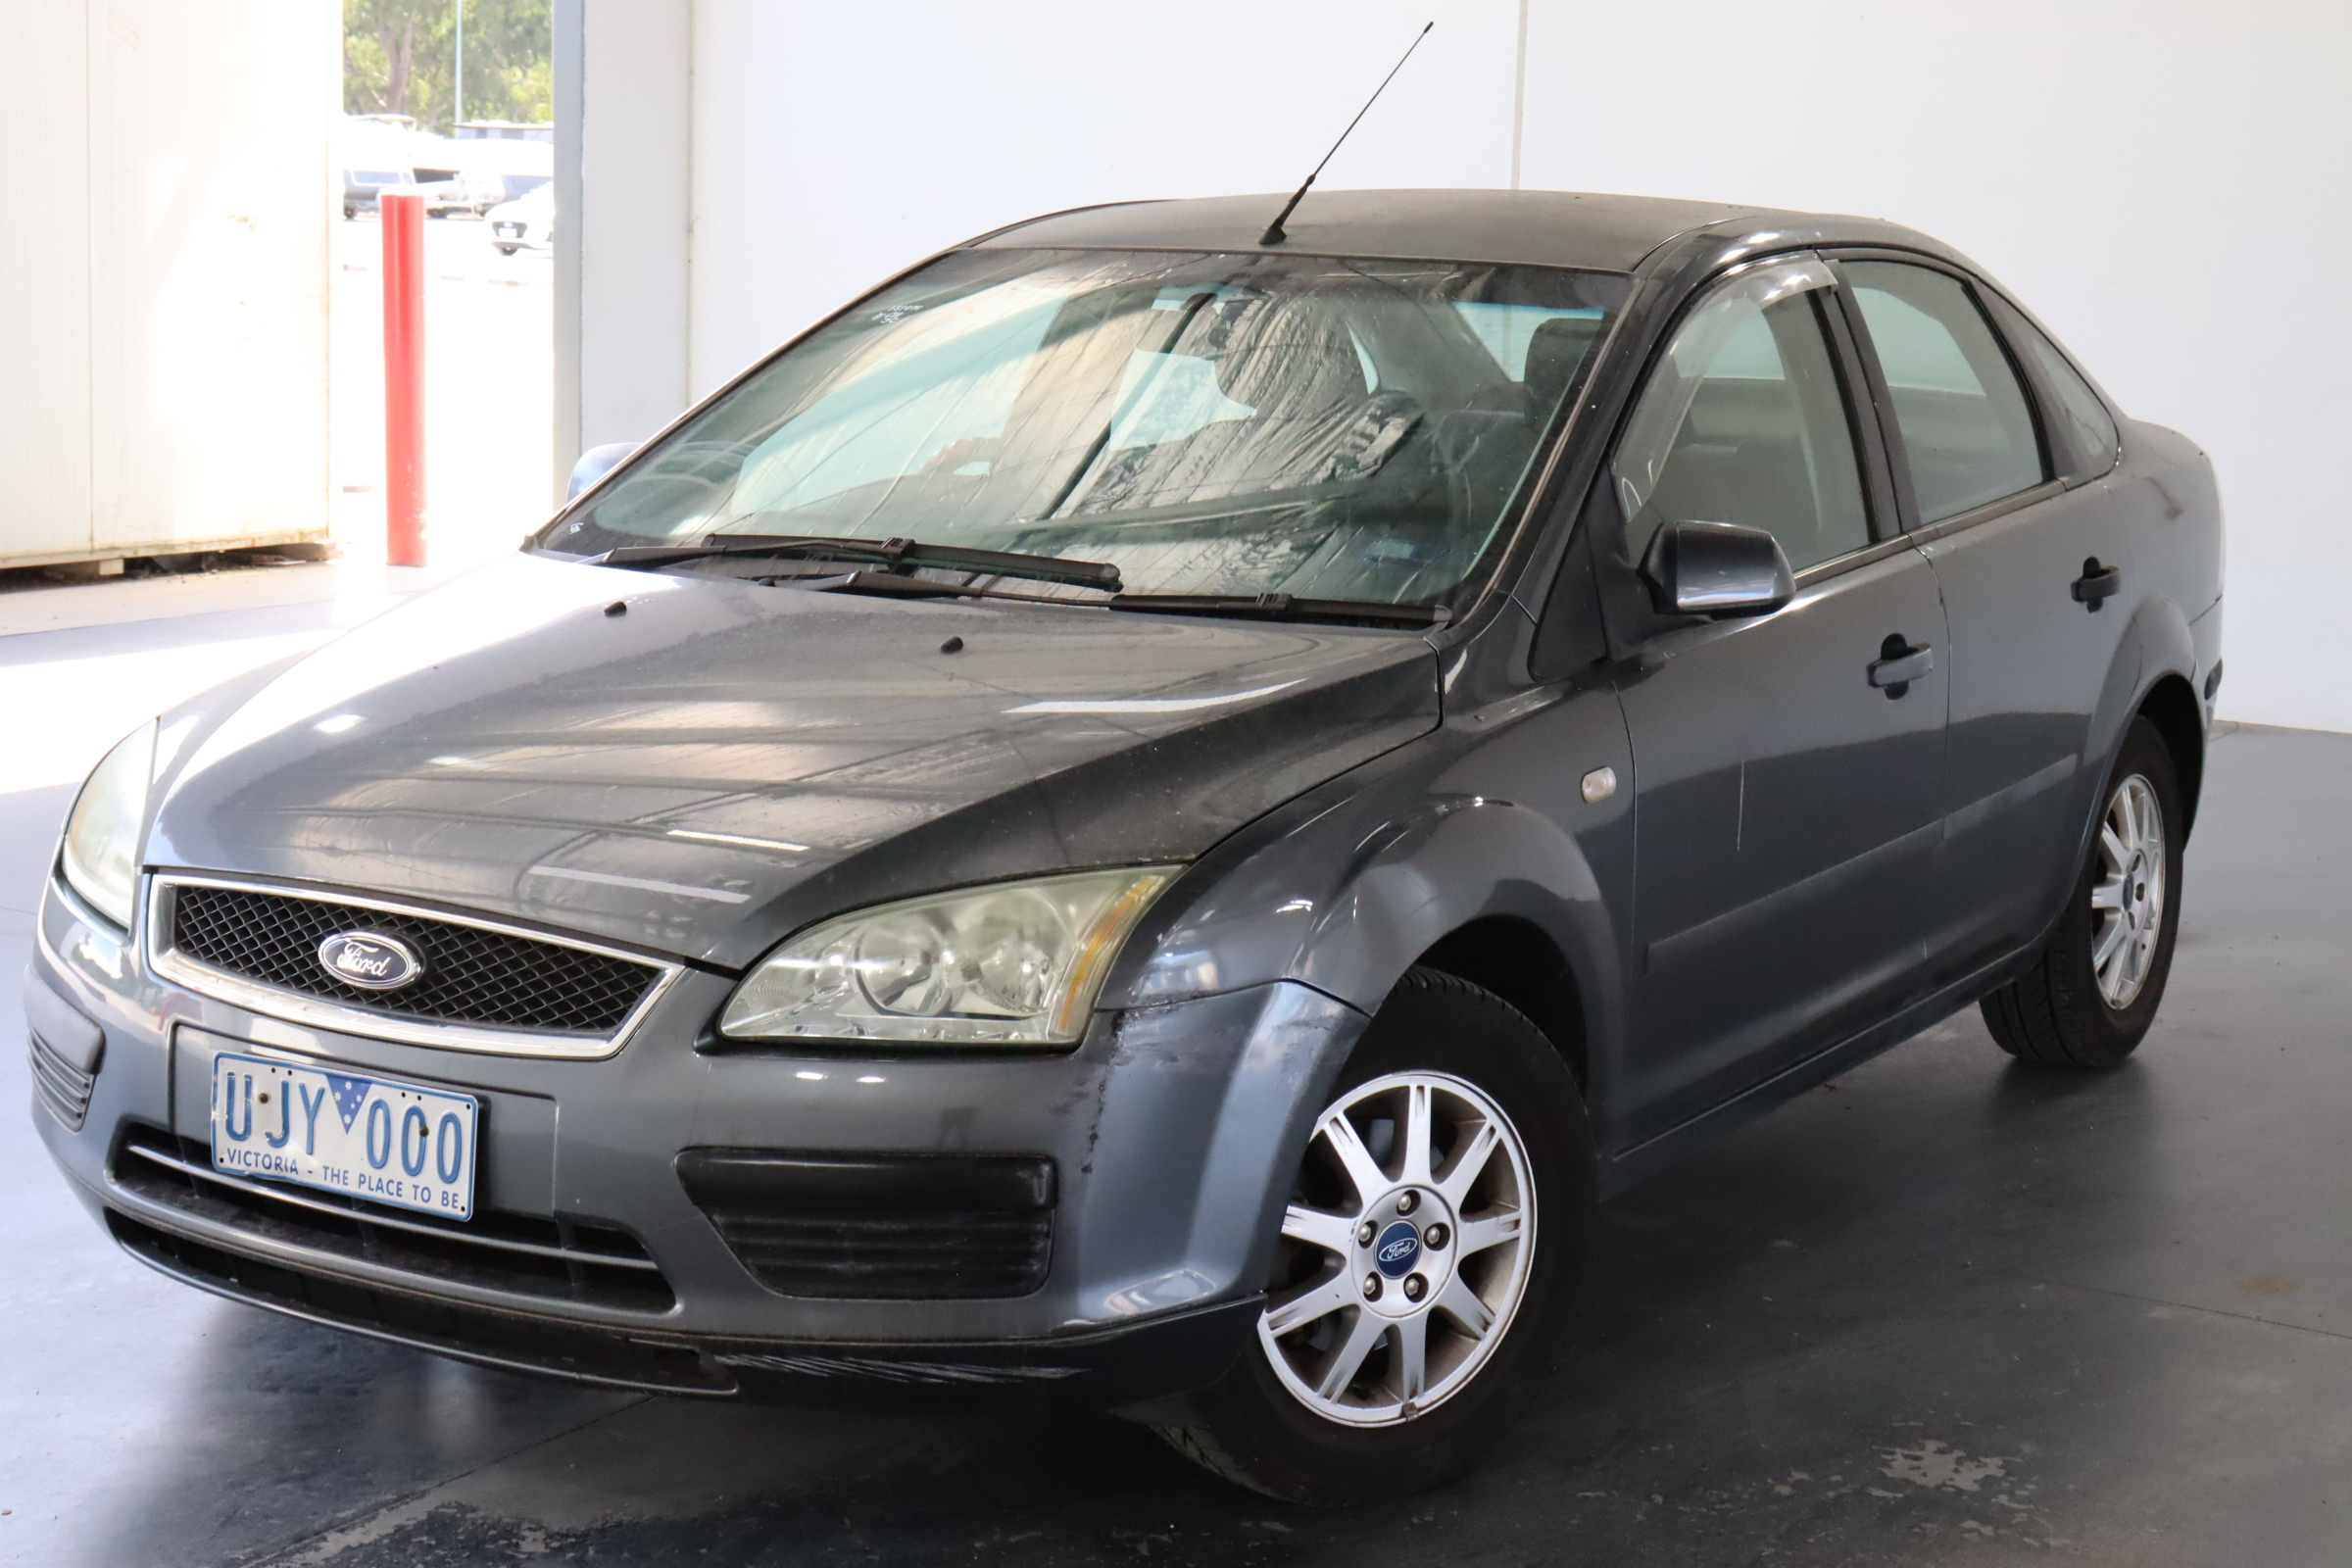 2006 Ford Focus CL LS Automatic Sedan